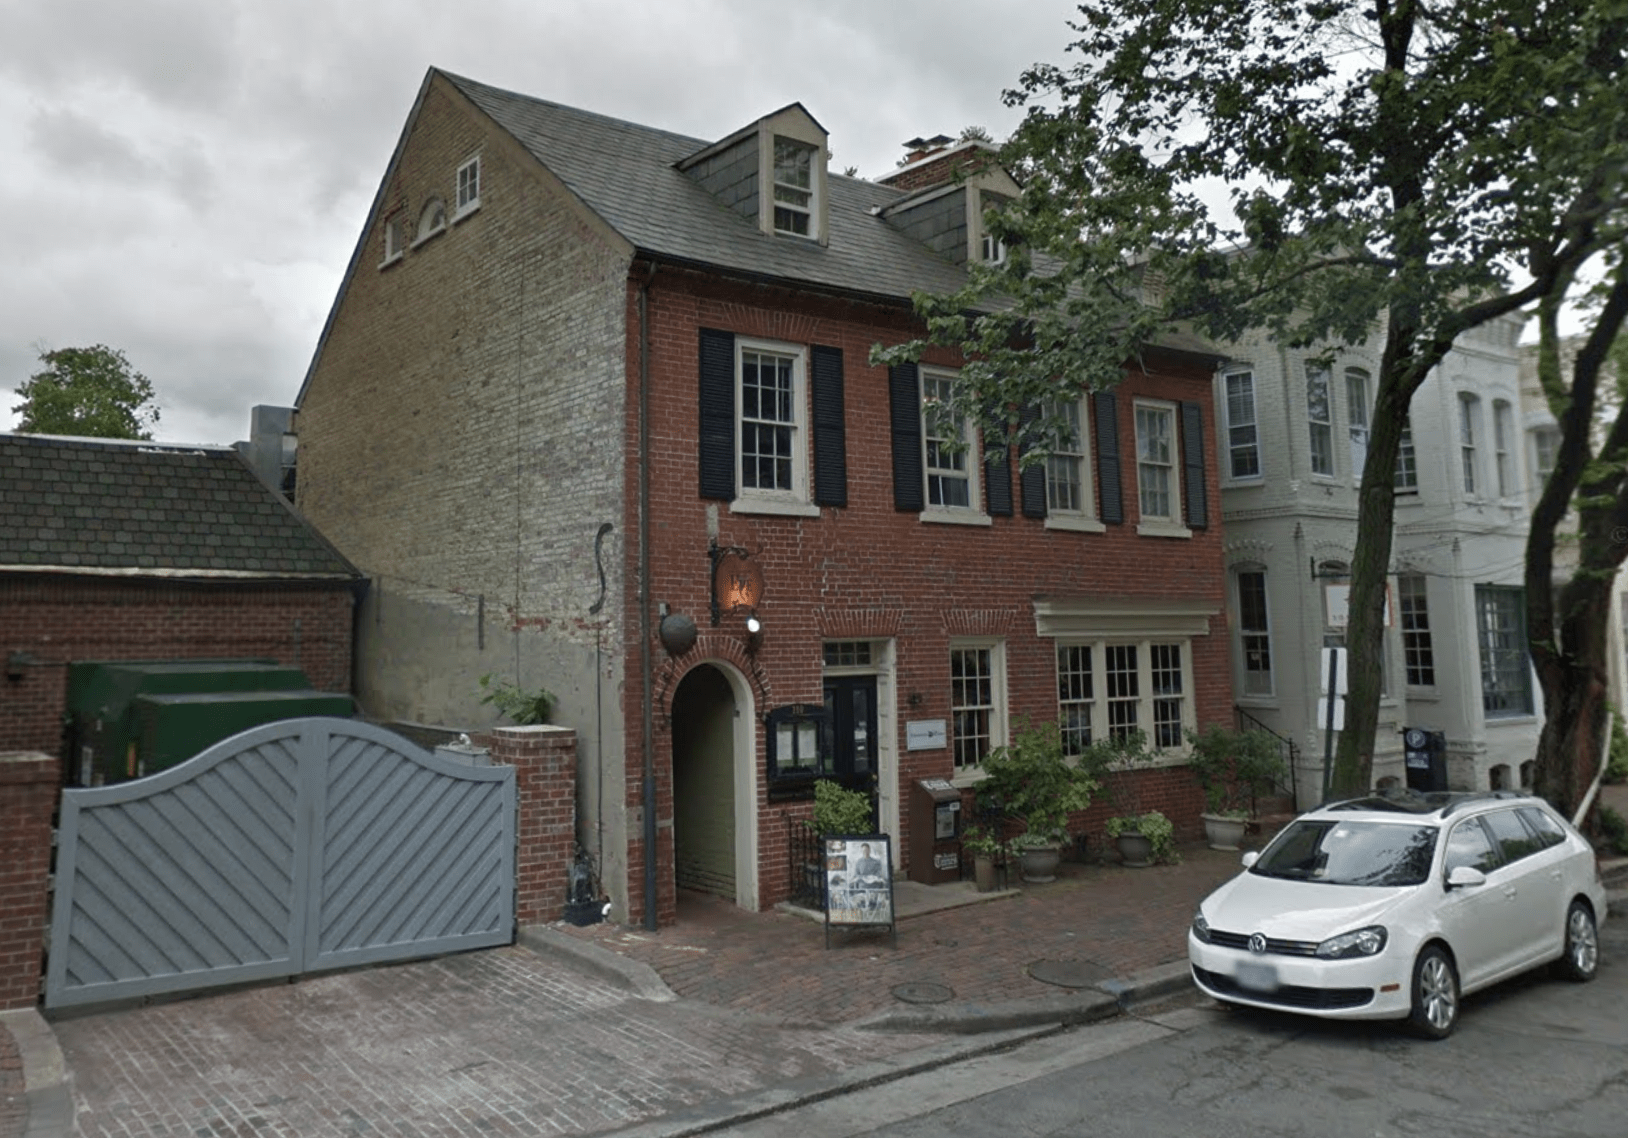 Restaurant Eve is closing June 2, 2018, in Old Town Alexandria, Virginia. The lease is up and the Chef Cathal Armstrong and his wife Meshellealong with business partner Todd Thrasher have decided to close it in order to focus on their other establishments. Details...